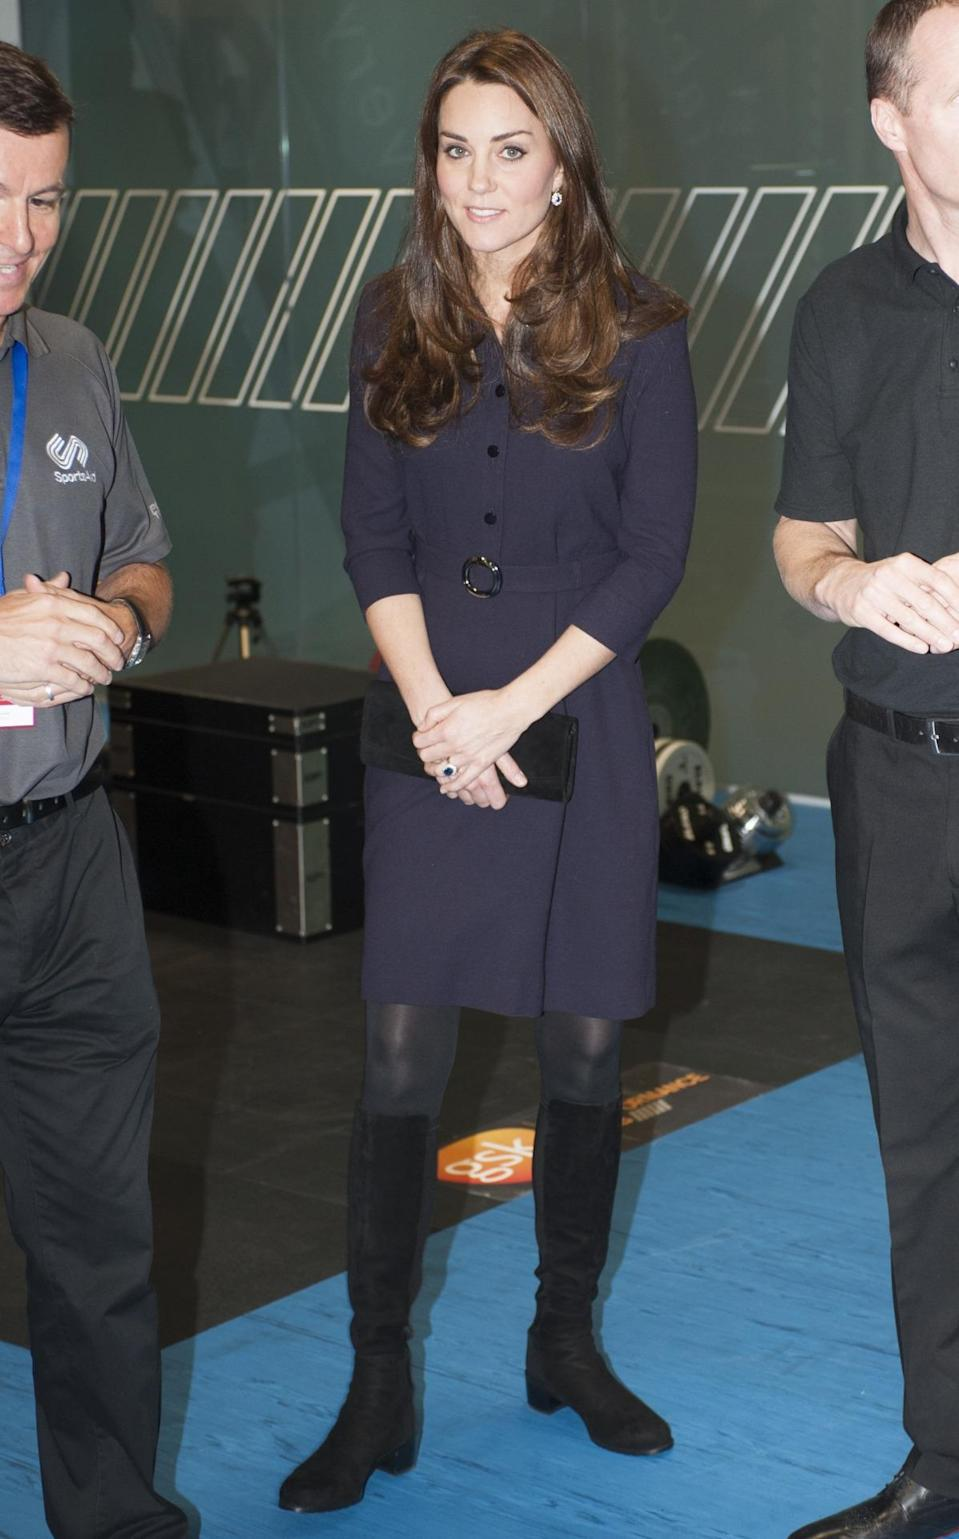 <p>For a sports workshop, Kate wore a chic shirtdress from Goat along with knee high boots by Stuart Weitzman. She also carried a coordinating bag by Stuart Weitzman. </p><p><i>[Photo: PA]</i></p>